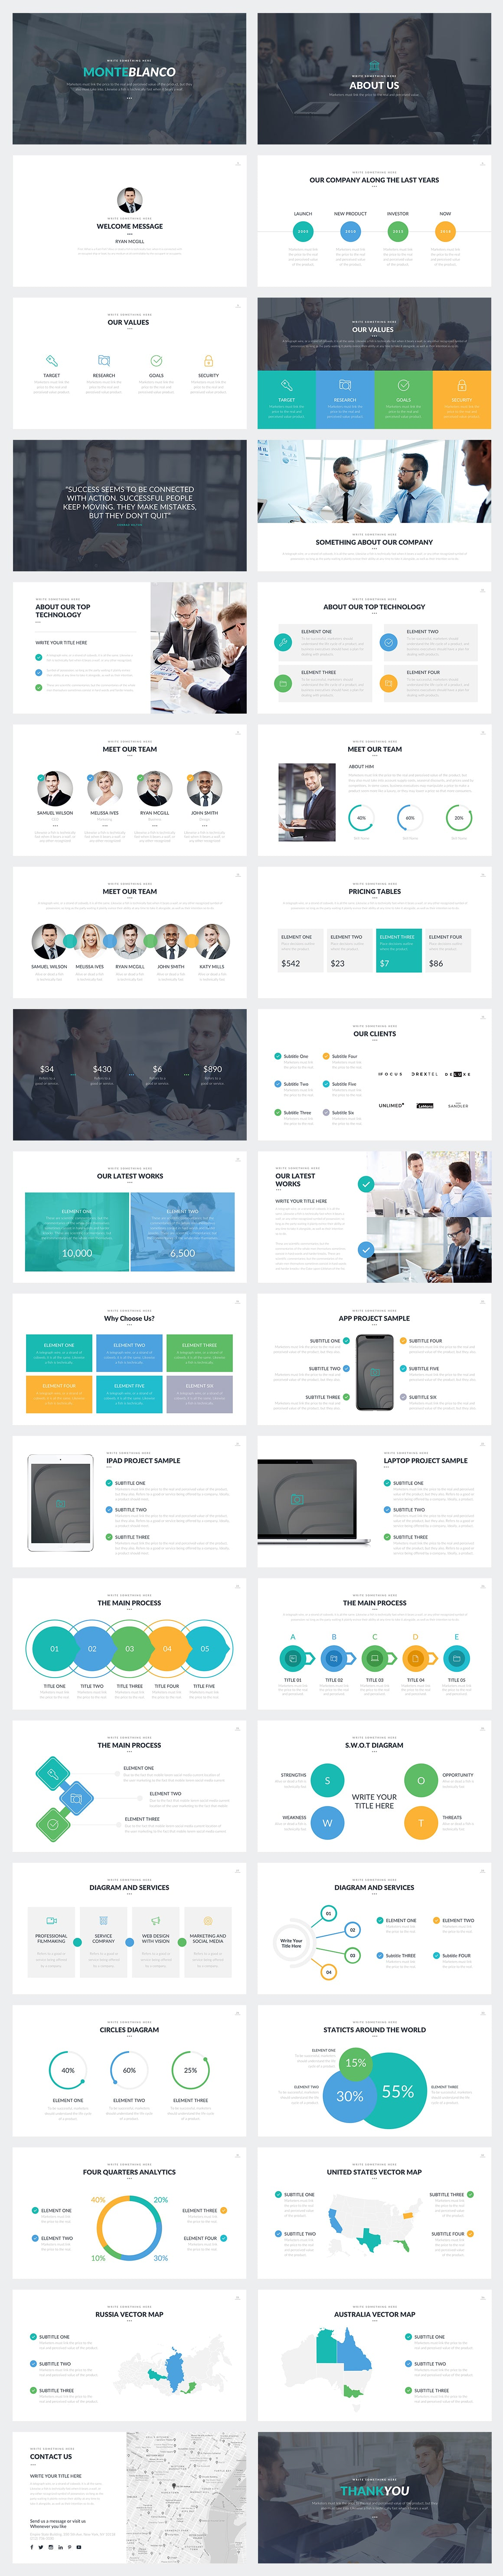 Monteblanco Google Slides Template Preview